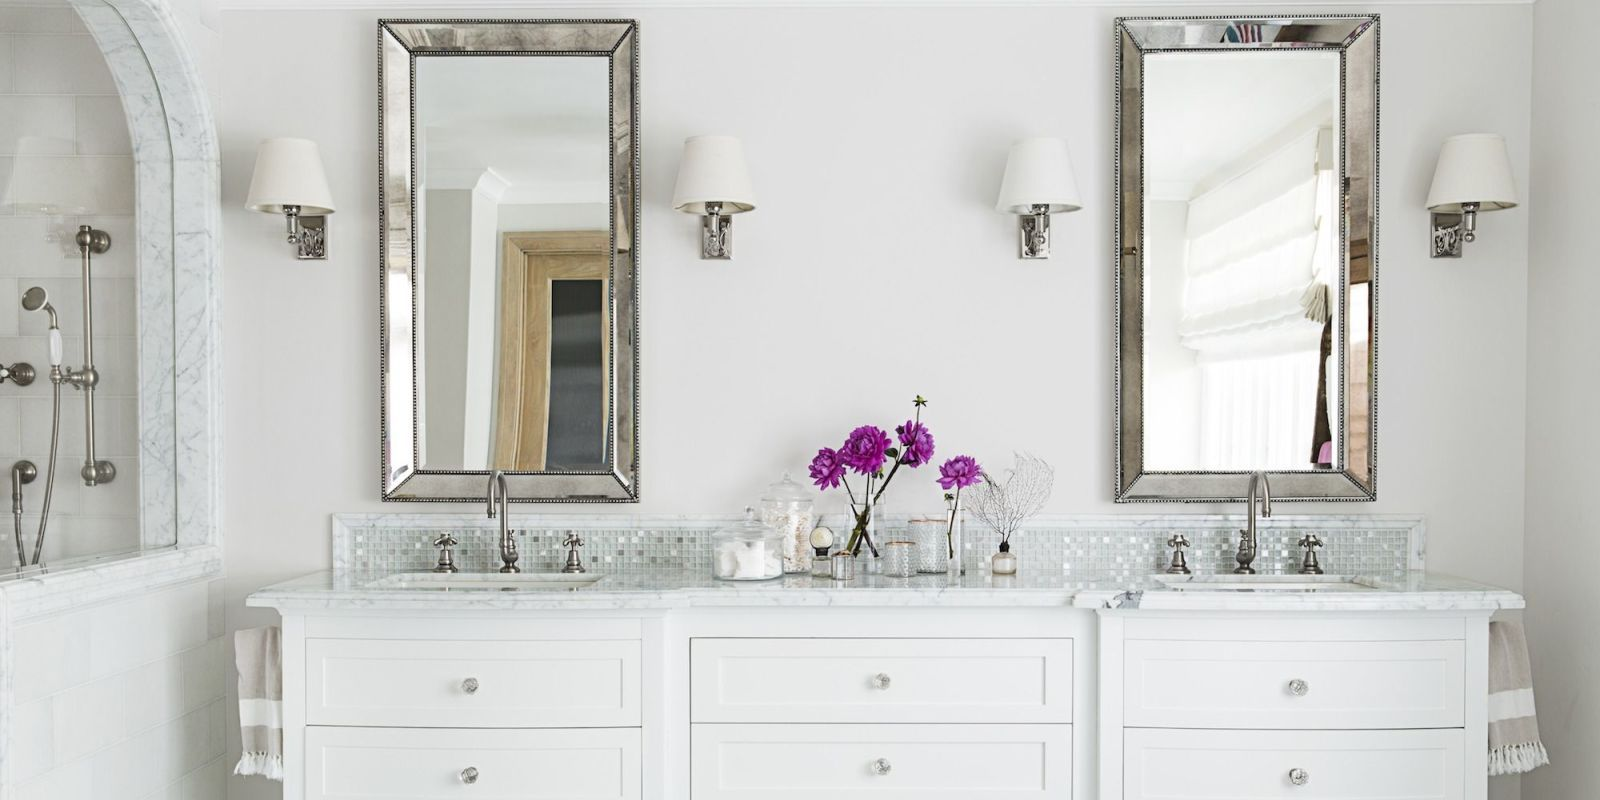 23 bathroom decorating ideas pictures of bathroom decor and designs rh goodhousekeeping com decorating bathroom ideas black and white decorating bathroom ideas black and white